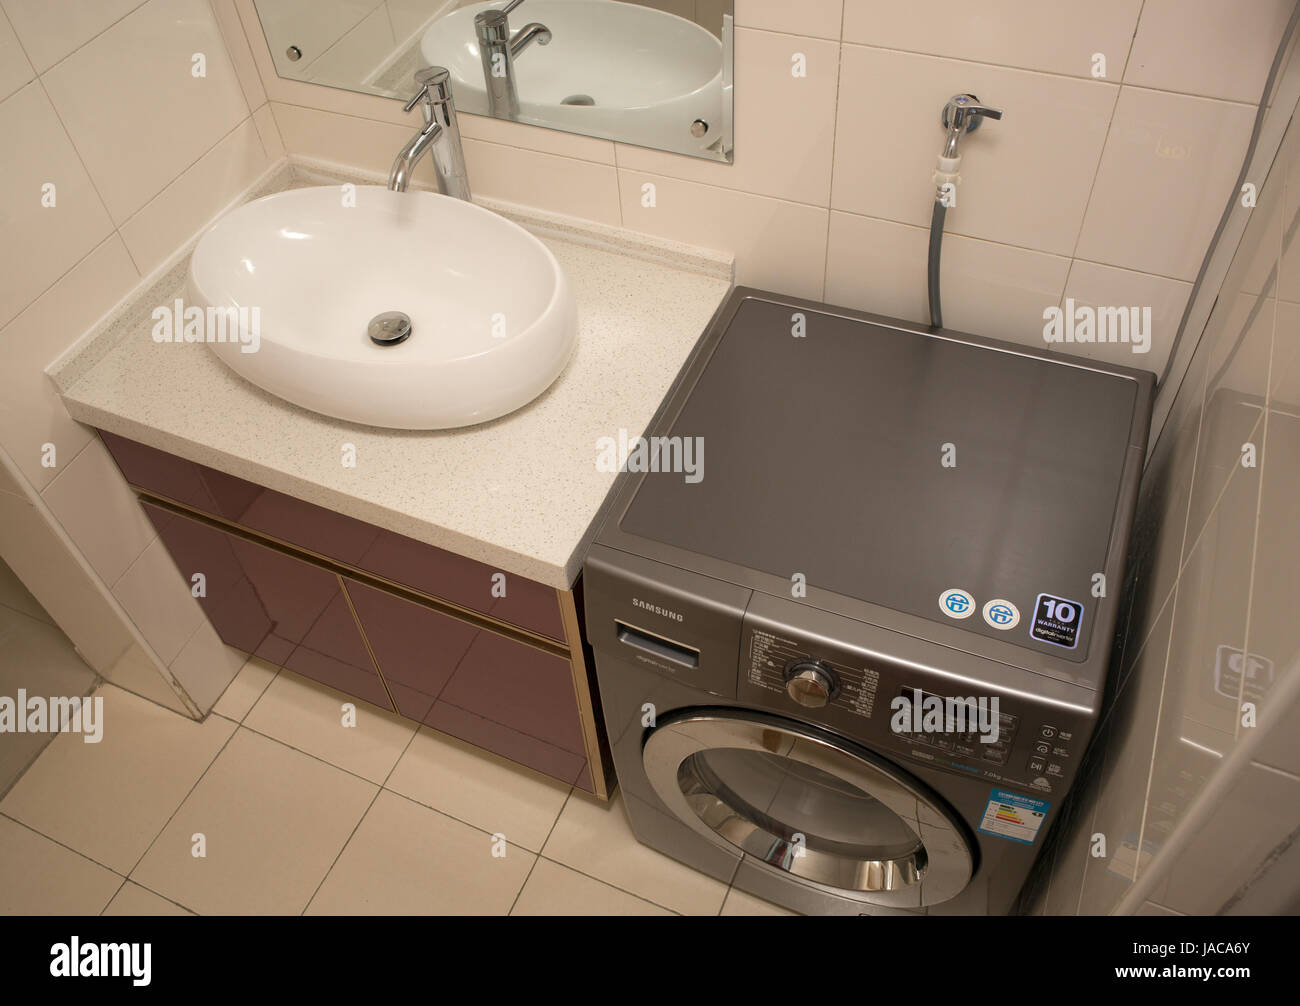 Apartment Washing Machine - Home Design Ideas